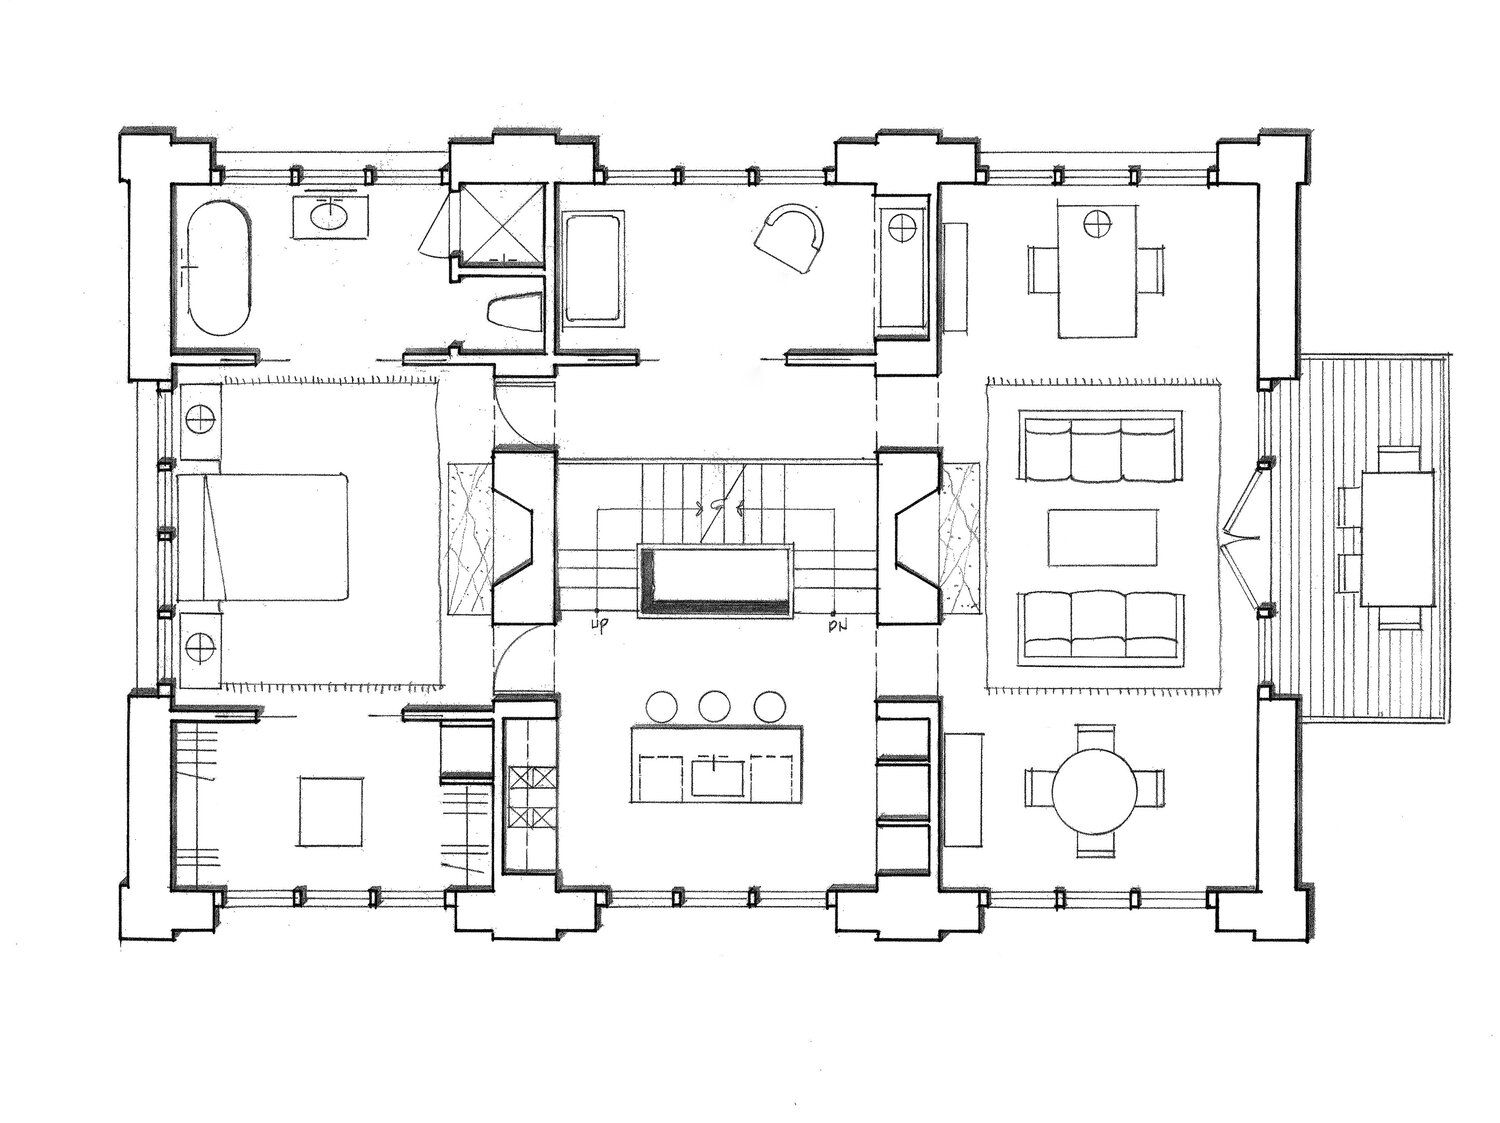 Coach House Haver And Skolnick Architects Coach House Architectural Floor Plans House Plans